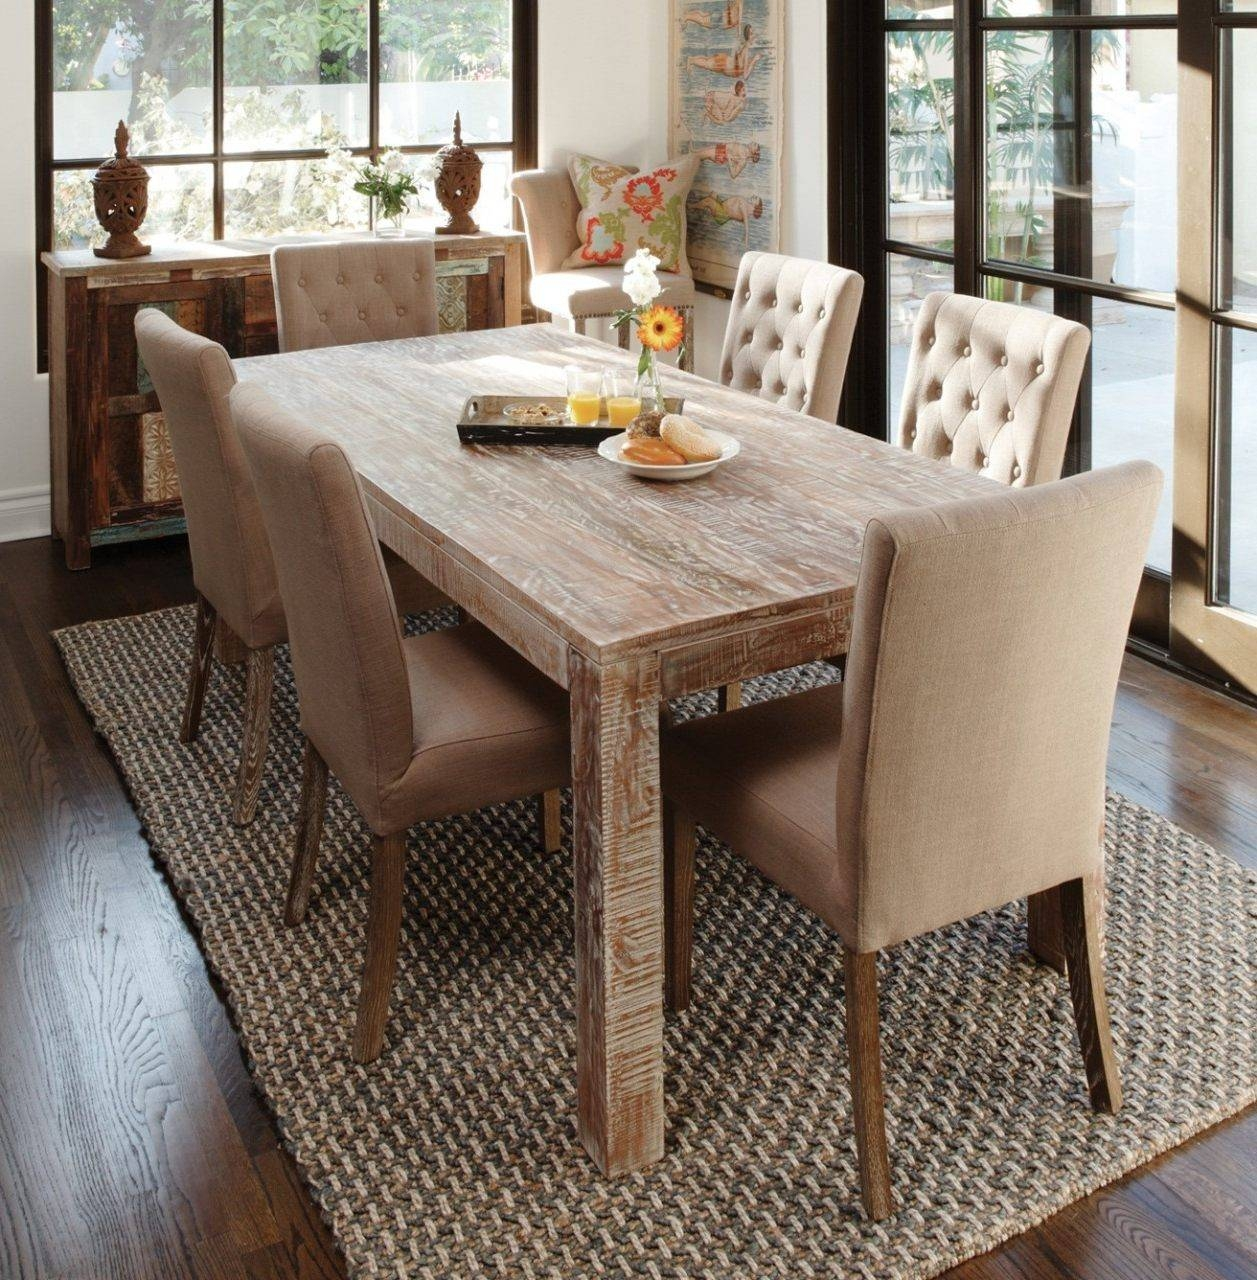 Chair Winsome Modern Rustic Kitchen Table Sofa With Set Gorgeous throughout Sofa Table With Chairs (Image 13 of 30)